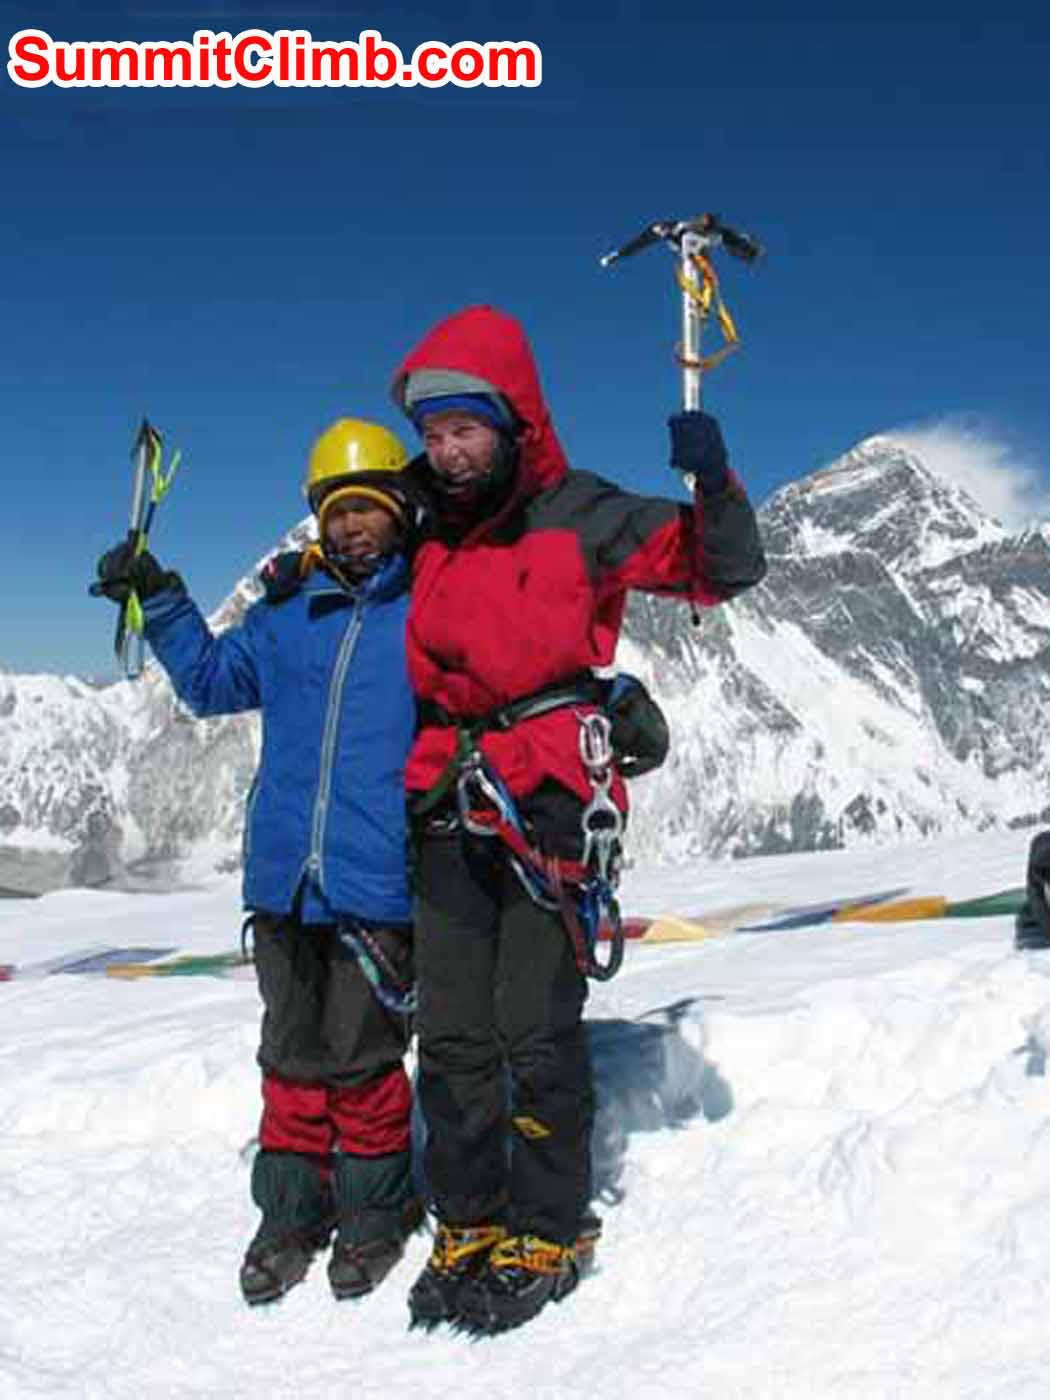 We were fortunate to be able to assist in the first ascent by a Nepalese woman, and putting the youngest woman on the summit. Maya Sherpa and Camille Kinny on the summit, with Everest on the right.